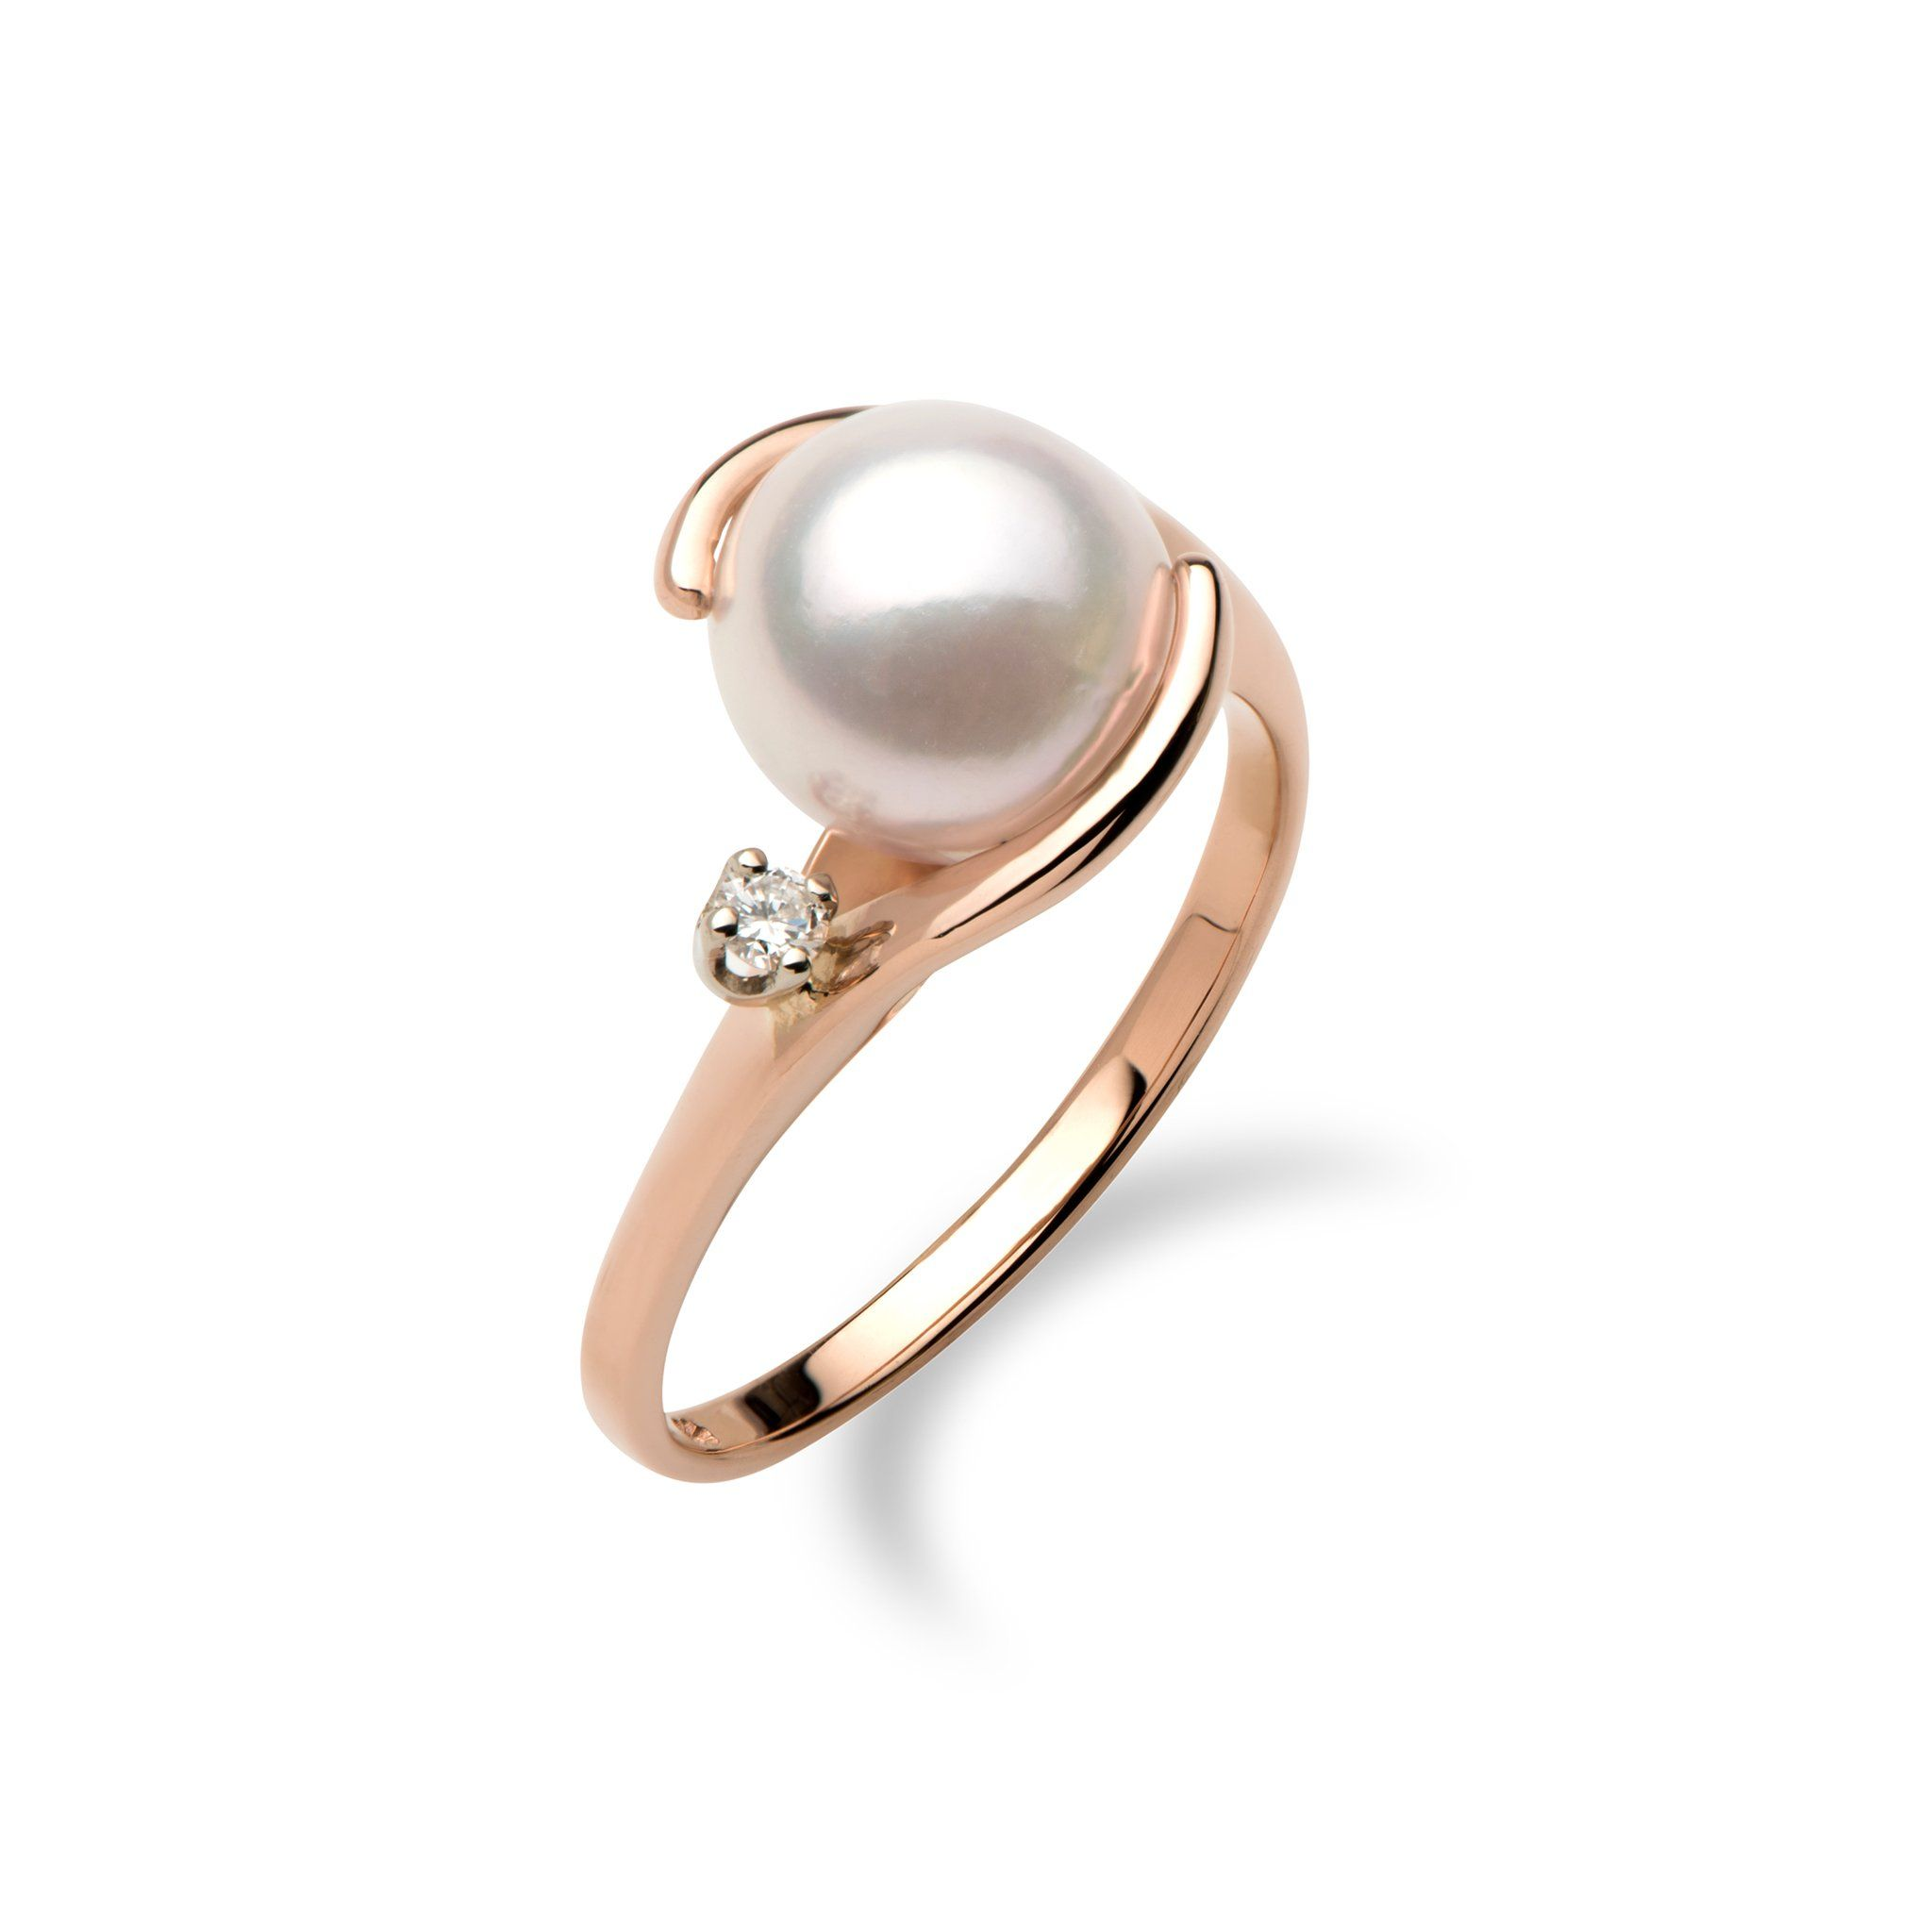 14K rose gold ring One round Akoya Pearl, 8mm One faceted round Diamond totaling 0.04 carats, total weight Ring sizes 4-9 Contact us for additional ring sizes